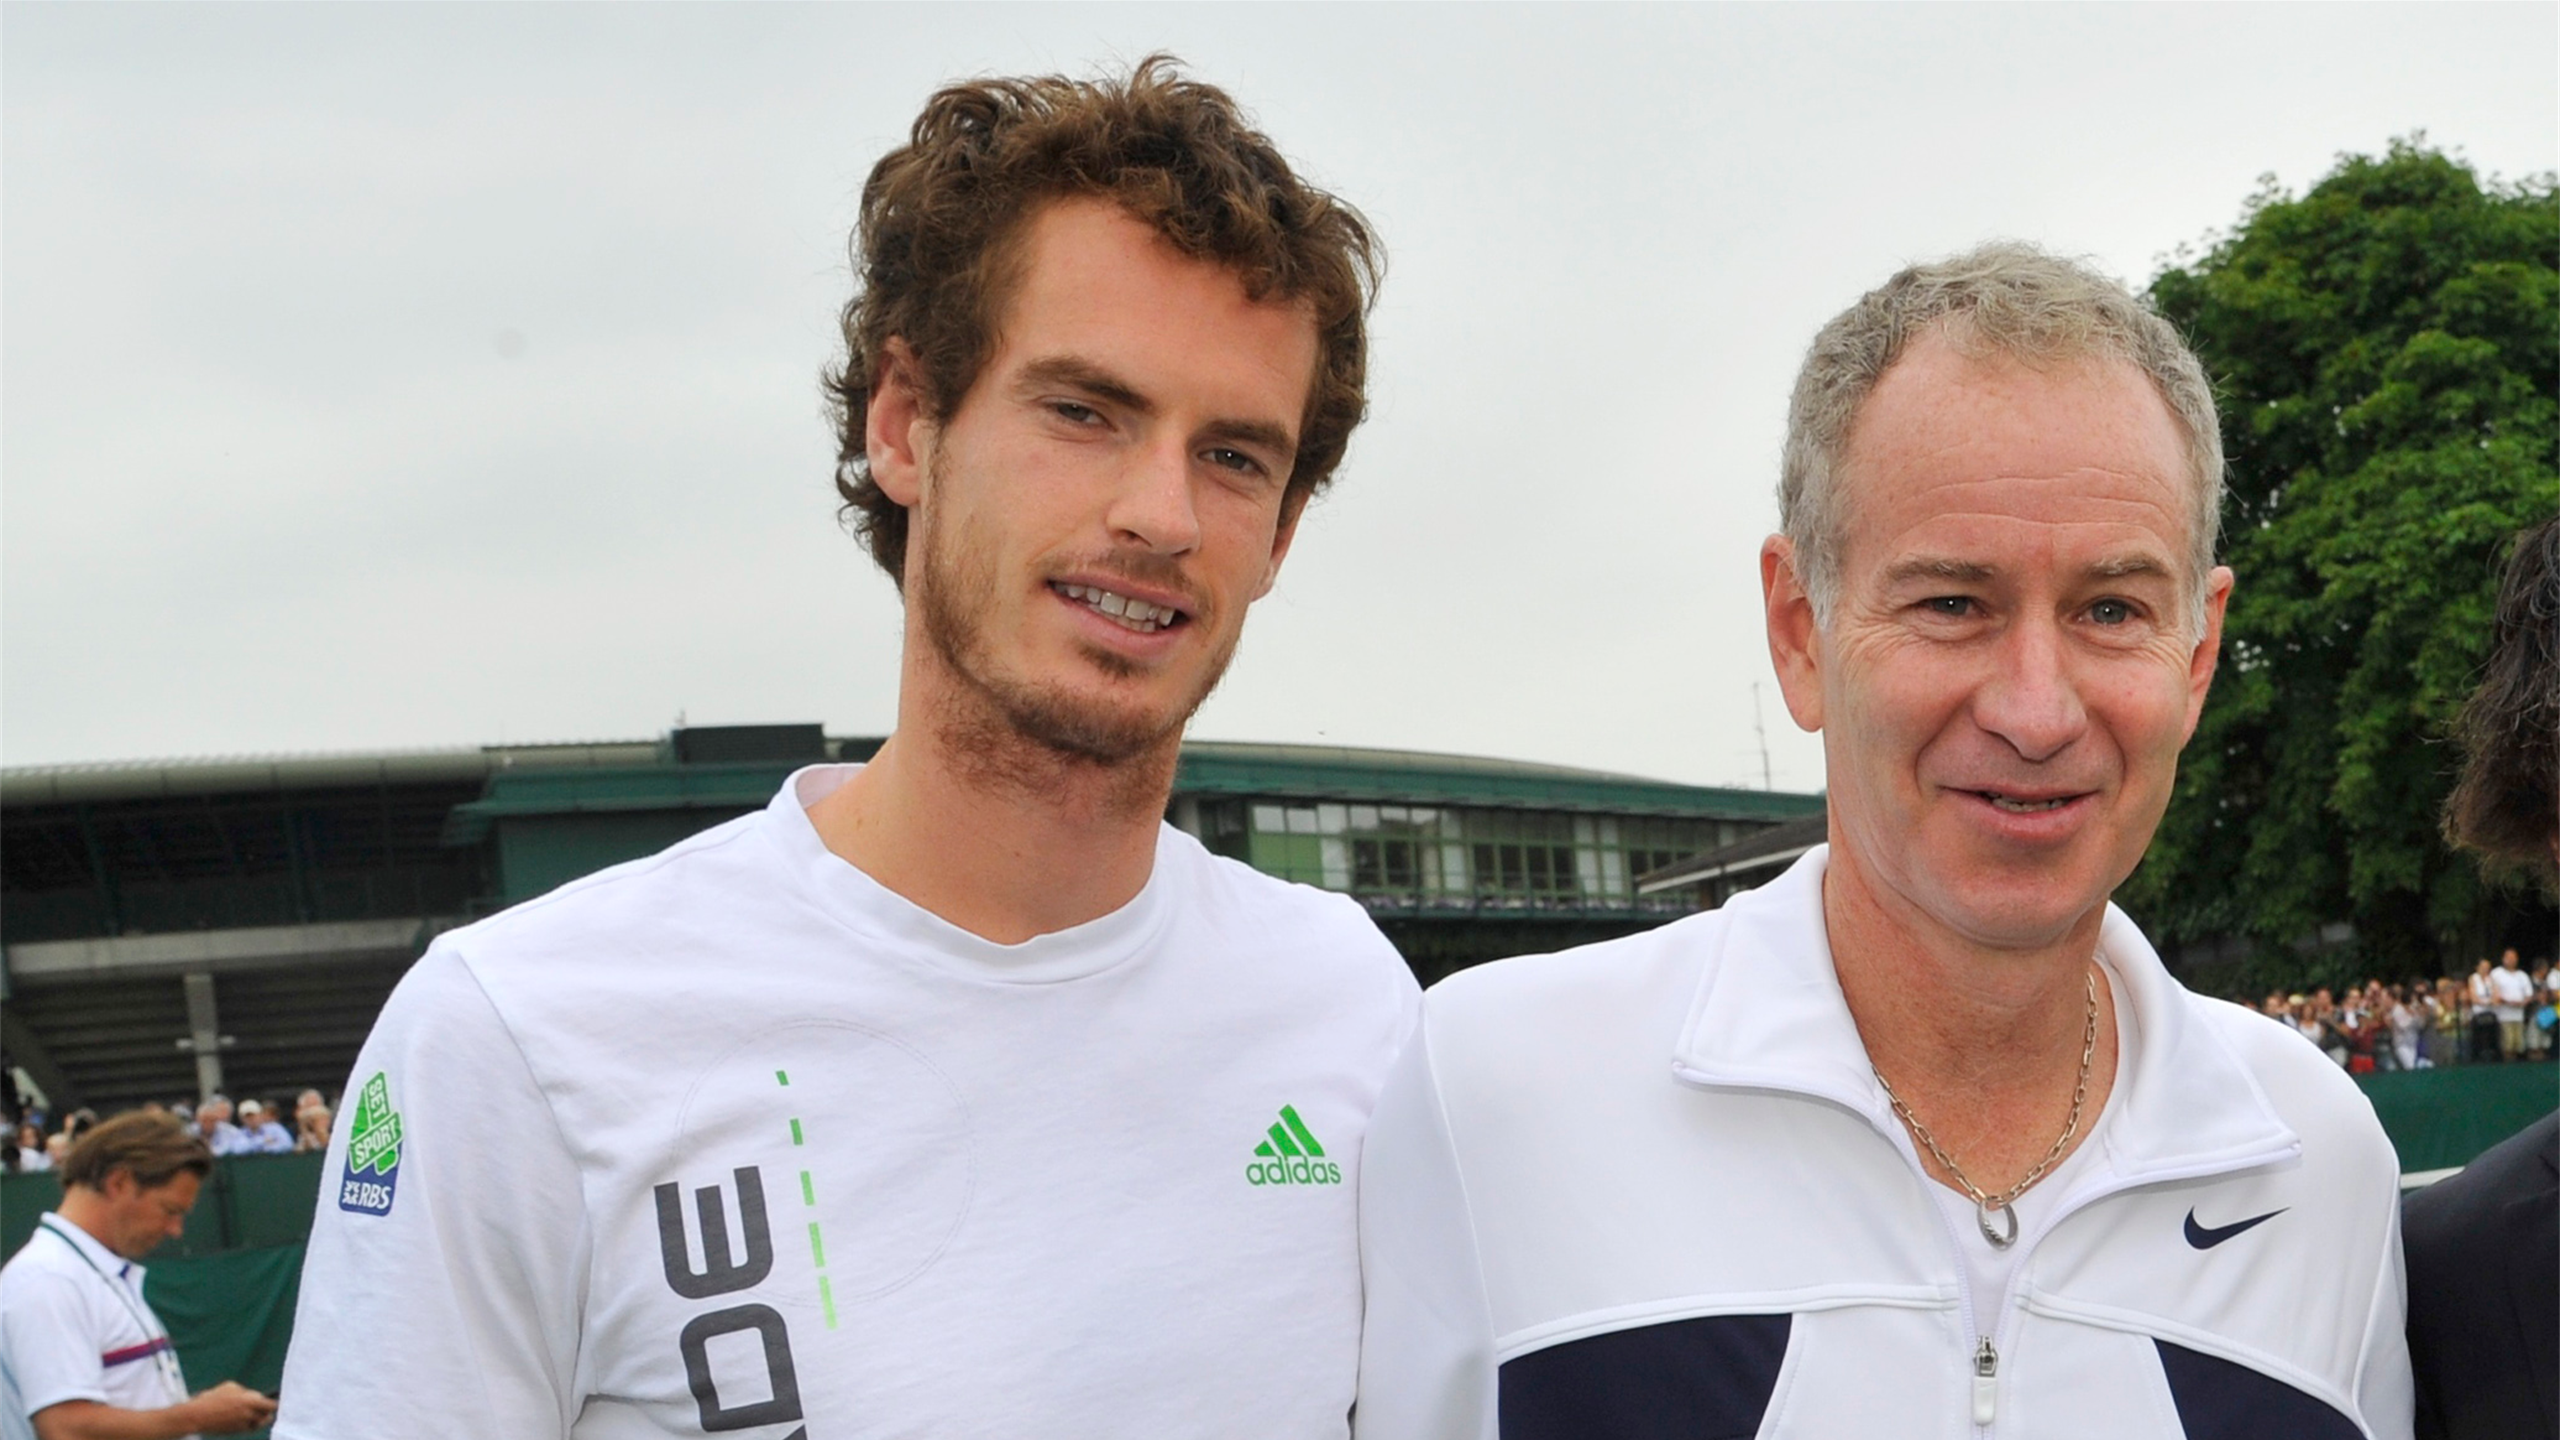 British number one Andy Murray with tennis legend John McEnroe